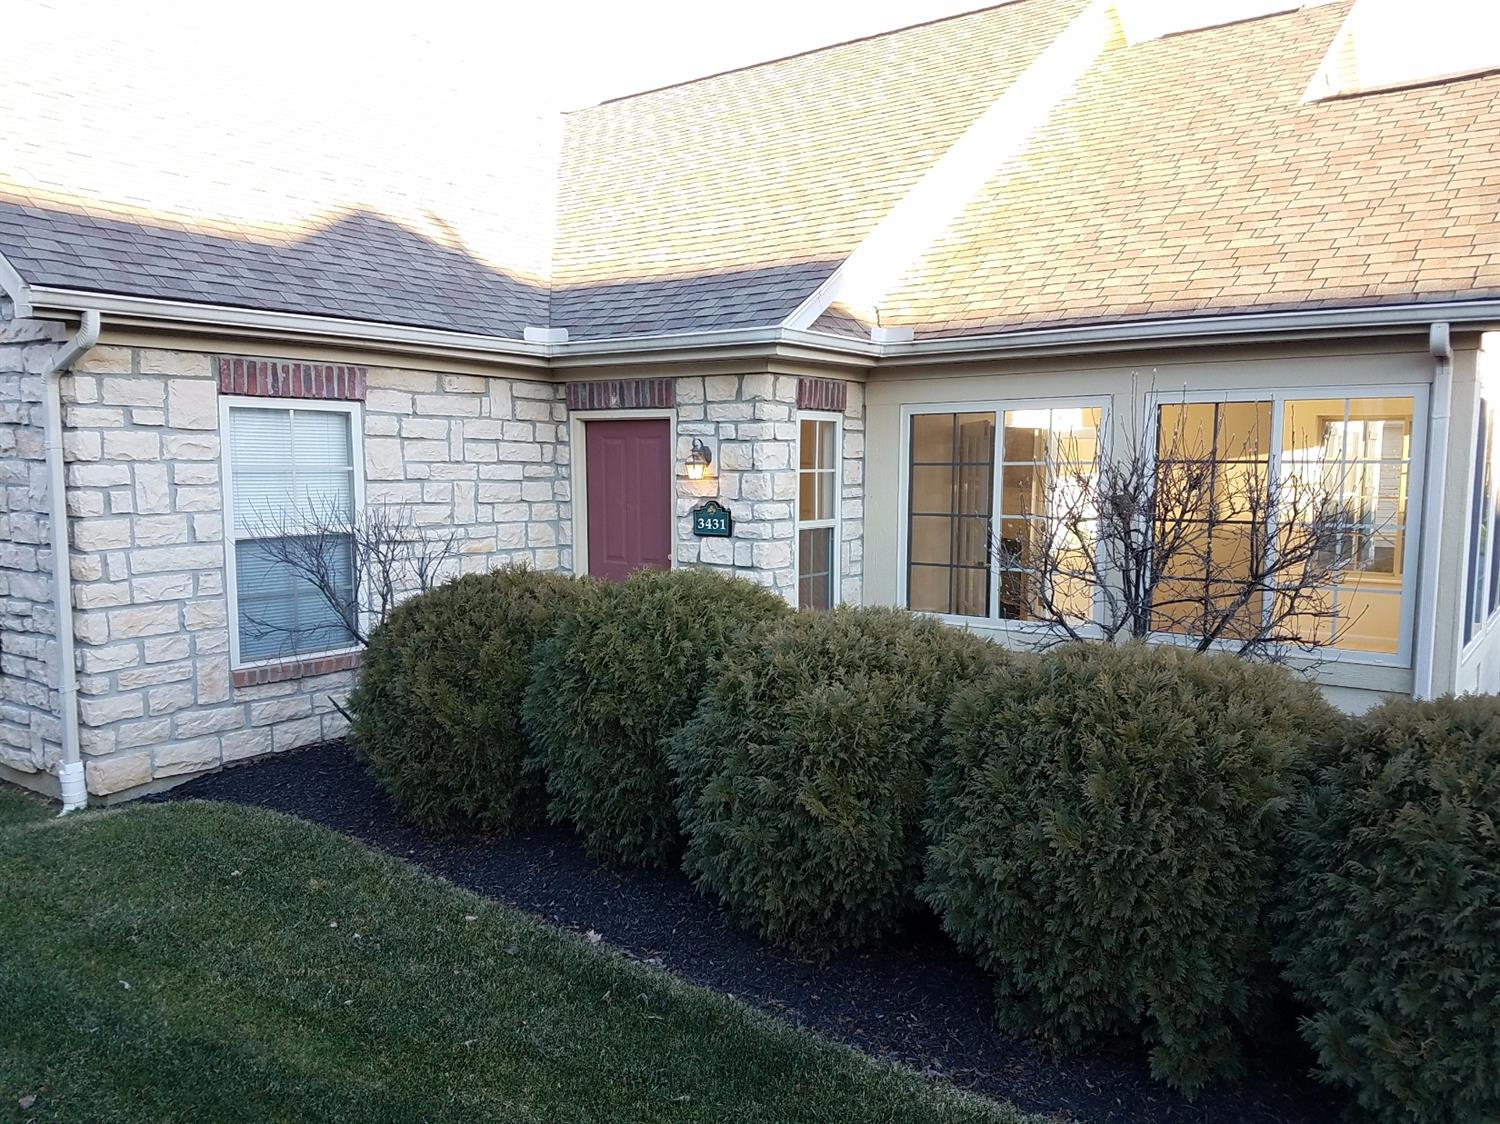 3431 Twenty Mile Wy, Deerfield Twp , OH 45140 Listing